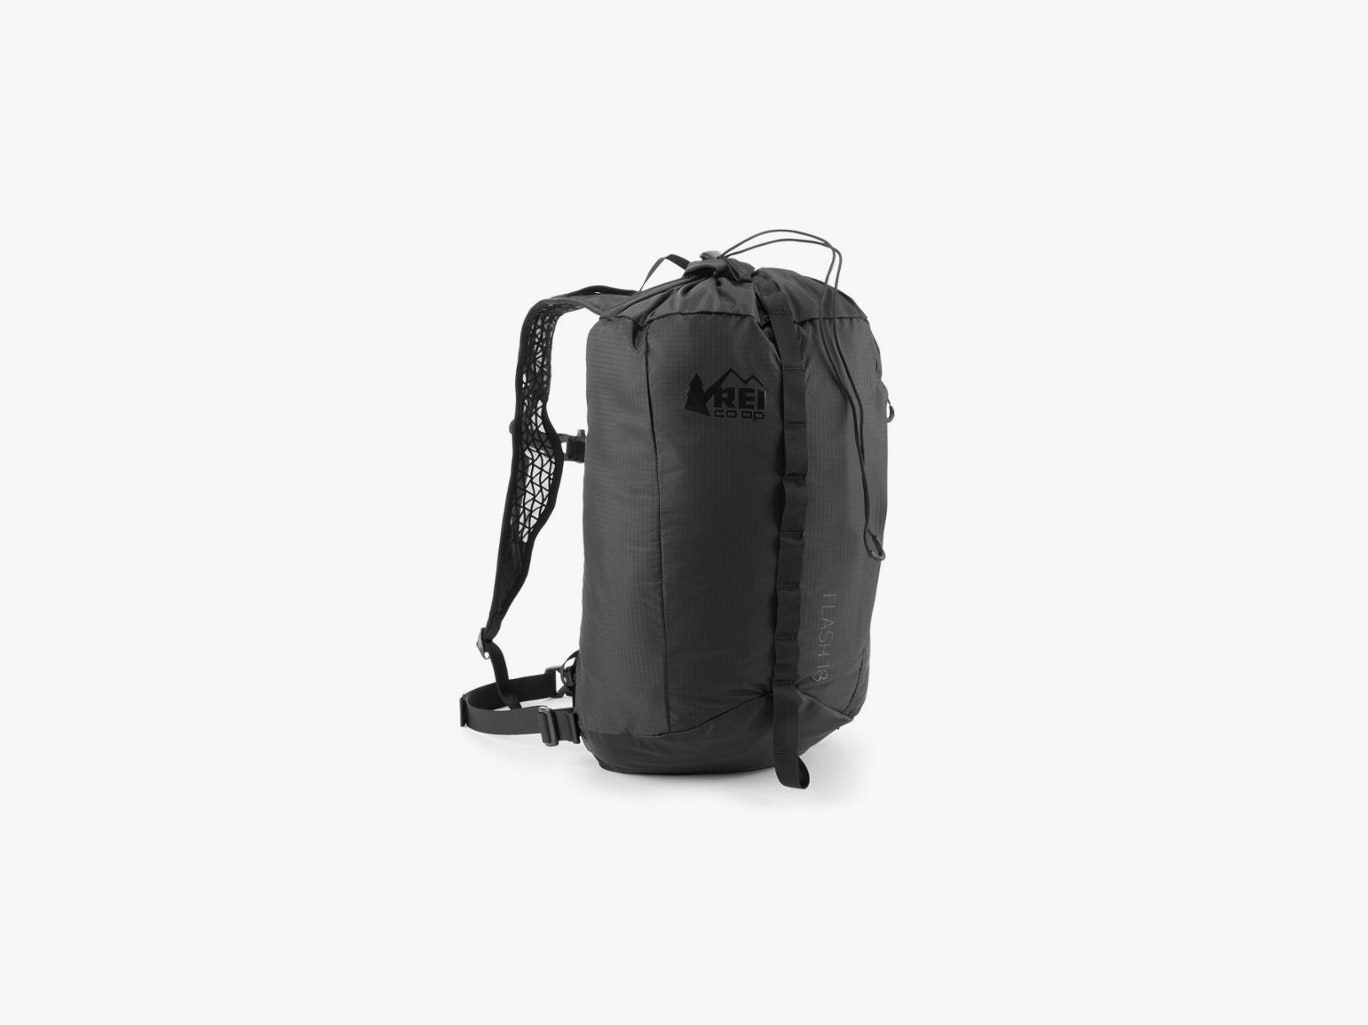 20 Best Deals From Winter Clearance Sales  Outdoor Apparel Backpacks and More